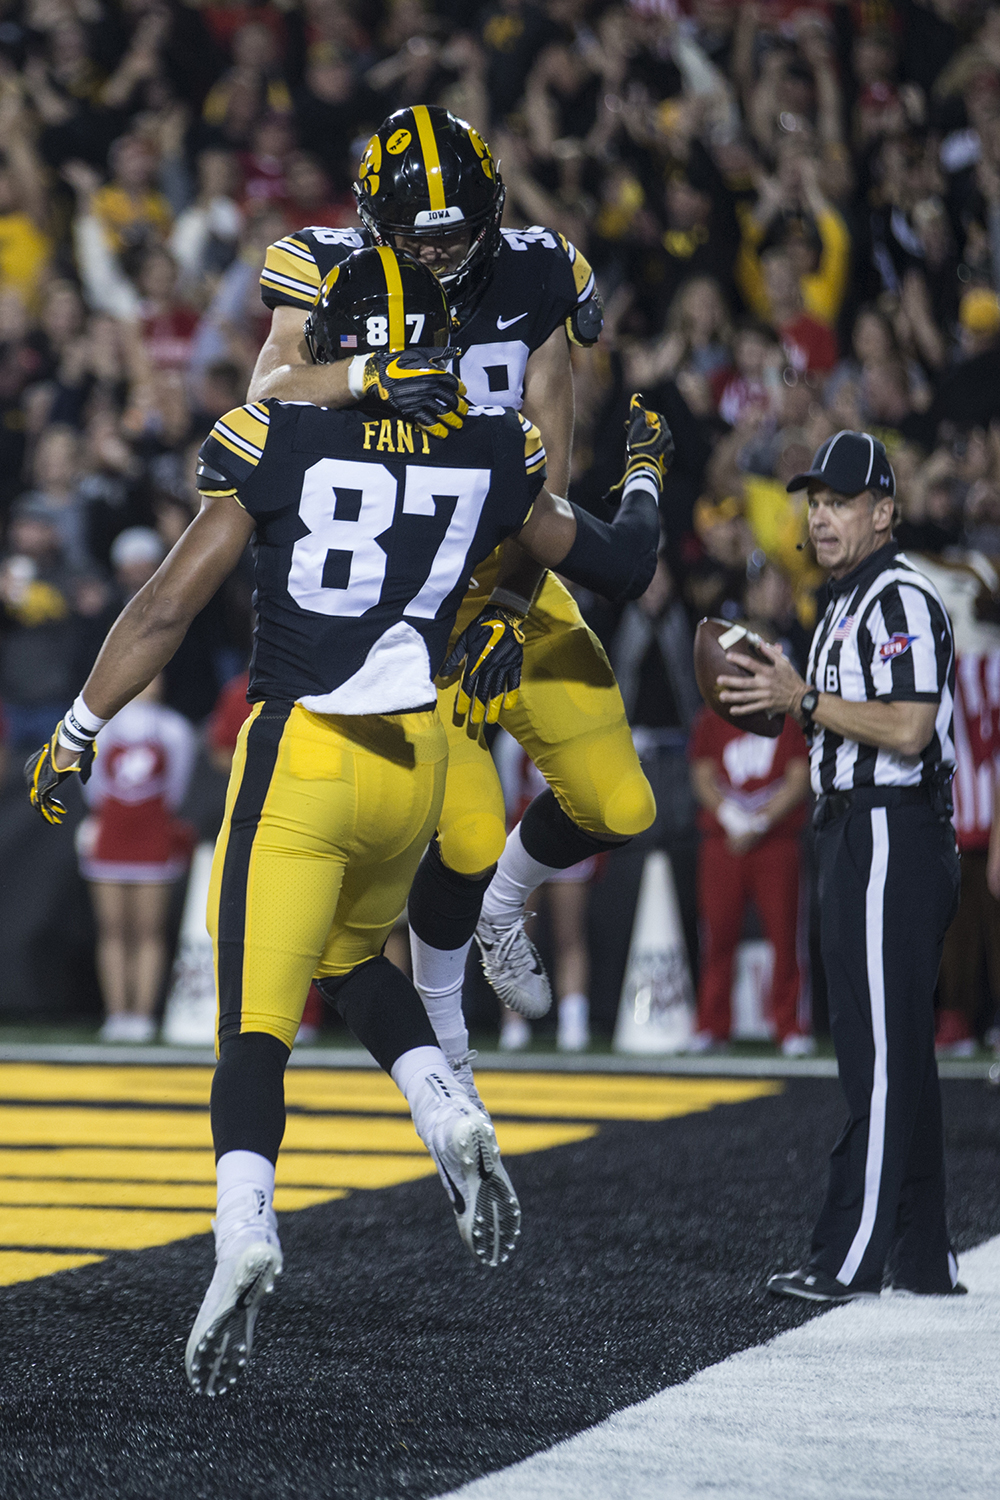 Iowa%27s+Noah+Fant+and+TJ+Hockenson+celebrate+a+touchdown+during+a+football+game+between+Iowa+and+Wisconsin+on+Saturday%2C+Sept.+22%2C+2018.+The+Badgers+defeated+the+Hawkeyes%2C+28-17.+